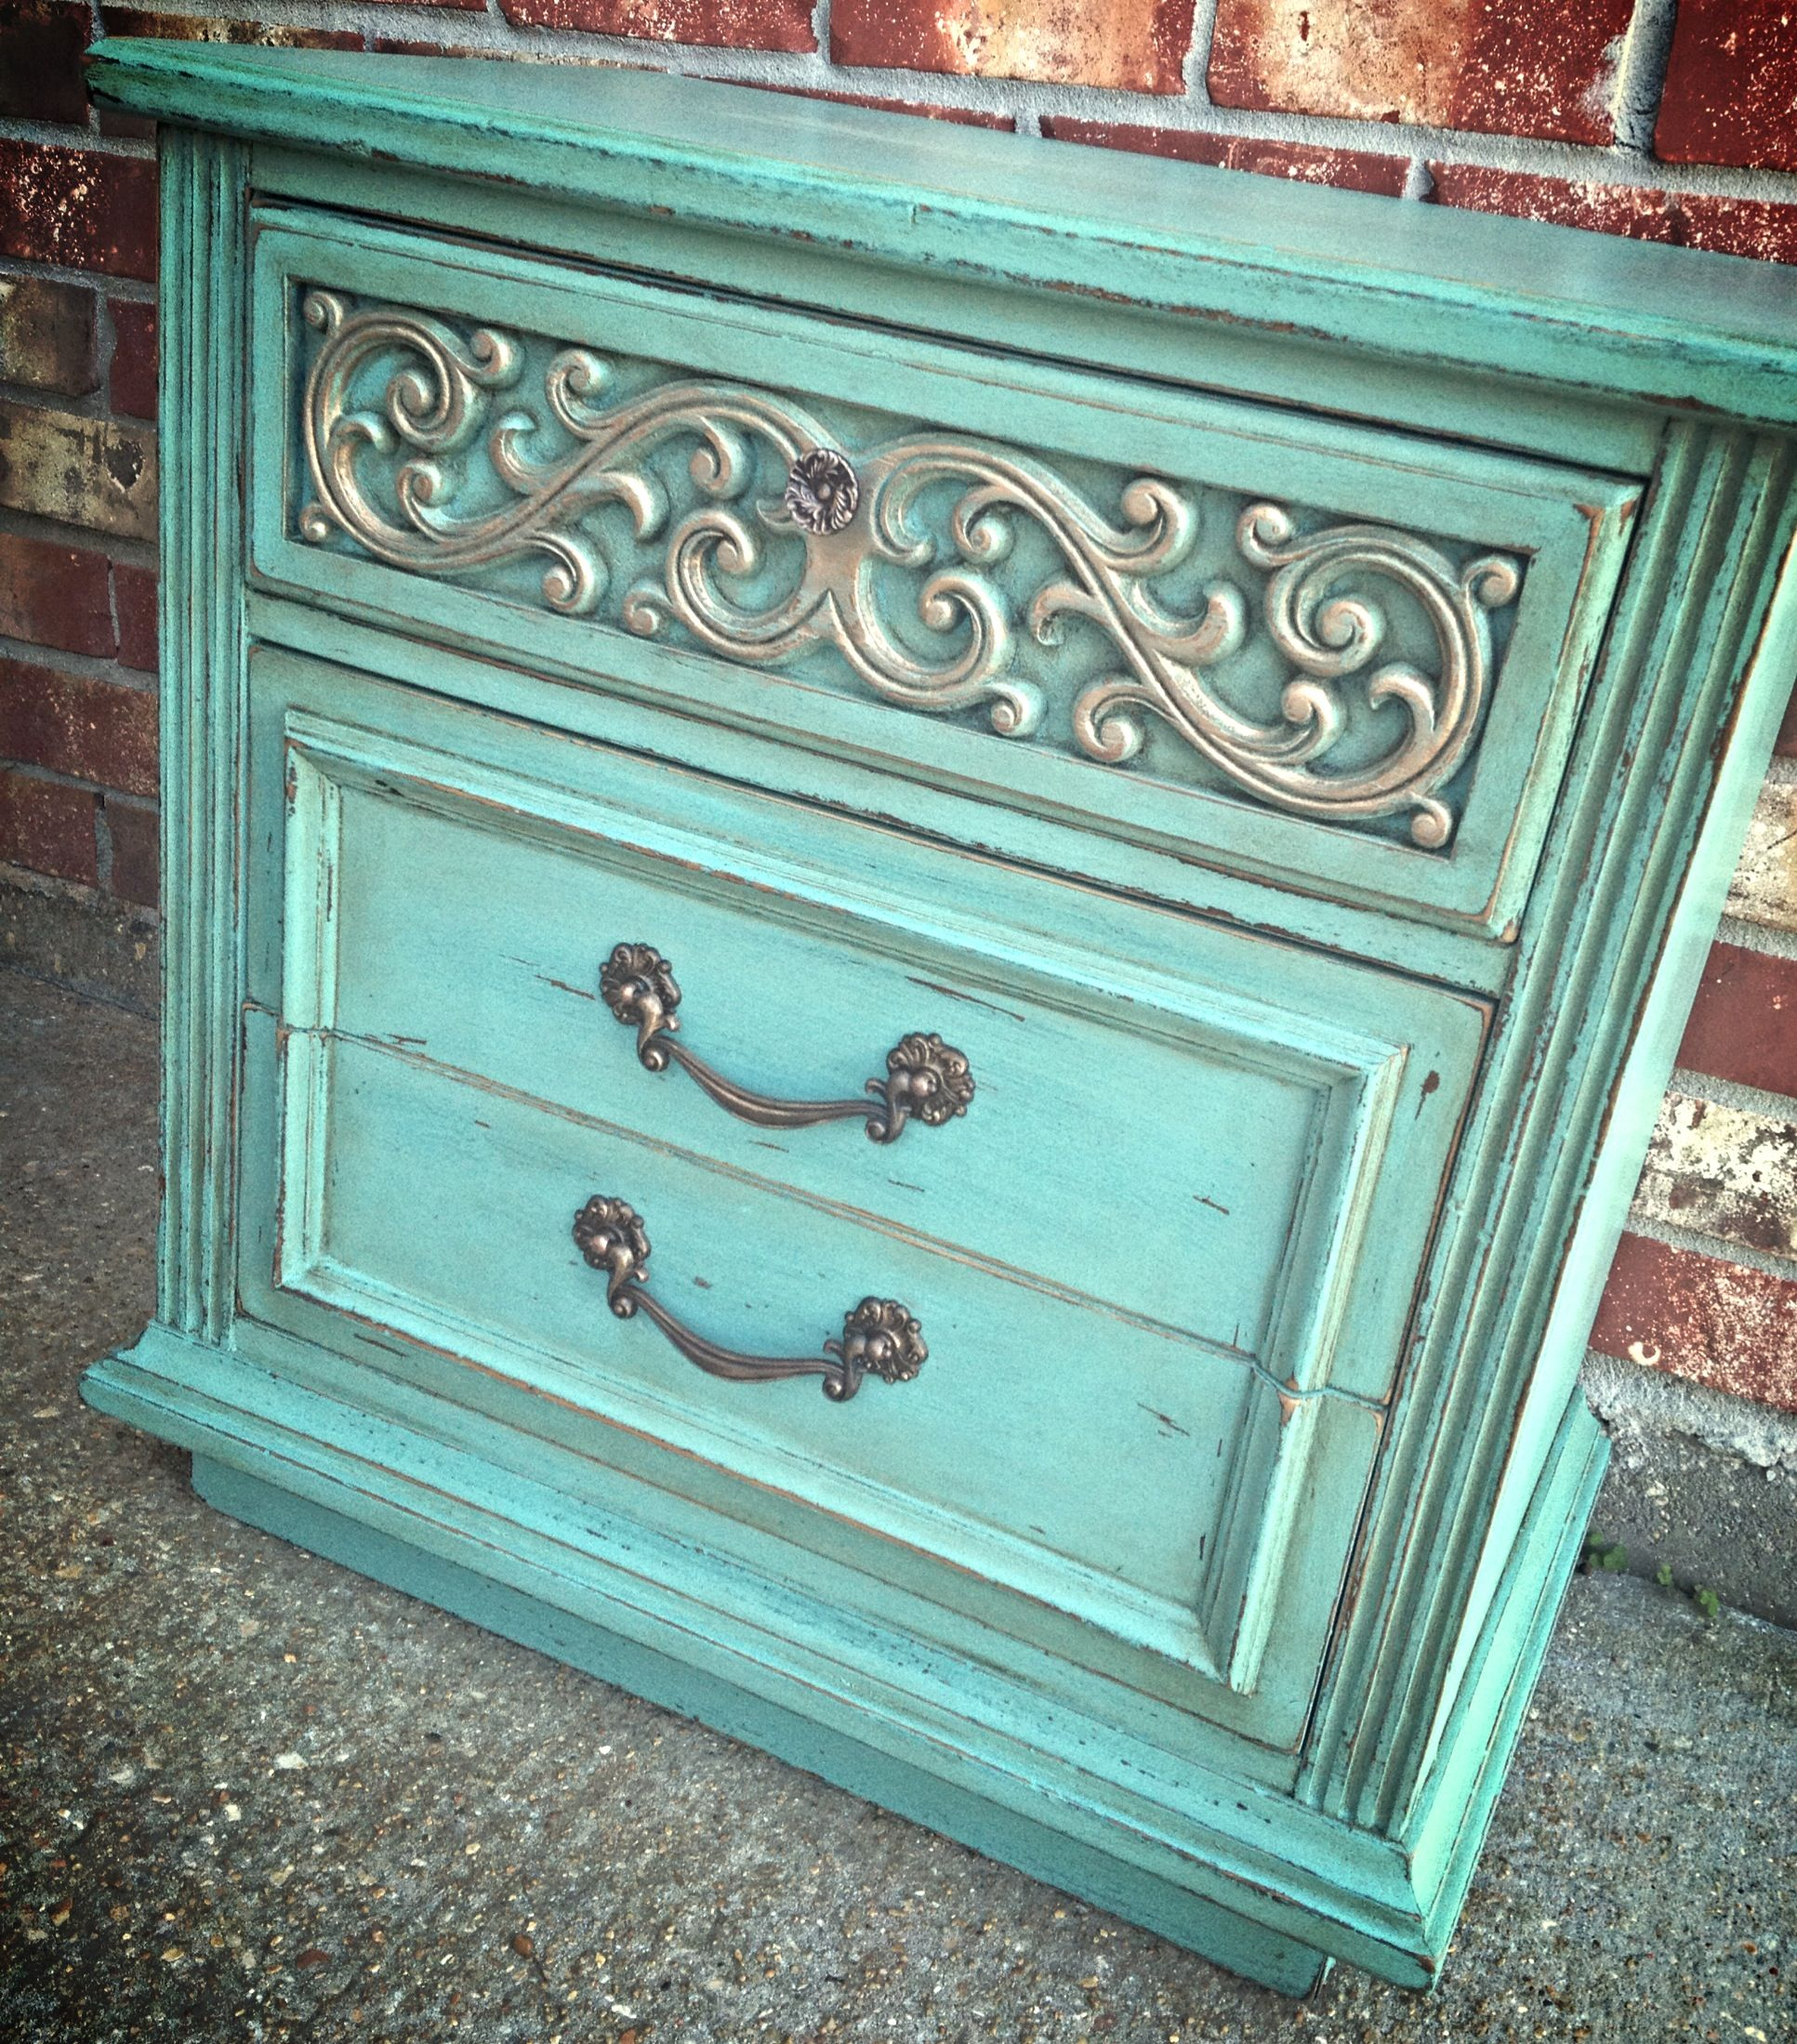 This end table was painted in a custom mix of General Finishes milk paints to create this turquoise color. An antique gold rub buff wax was used on the accent pieces and it was sealed for durability.